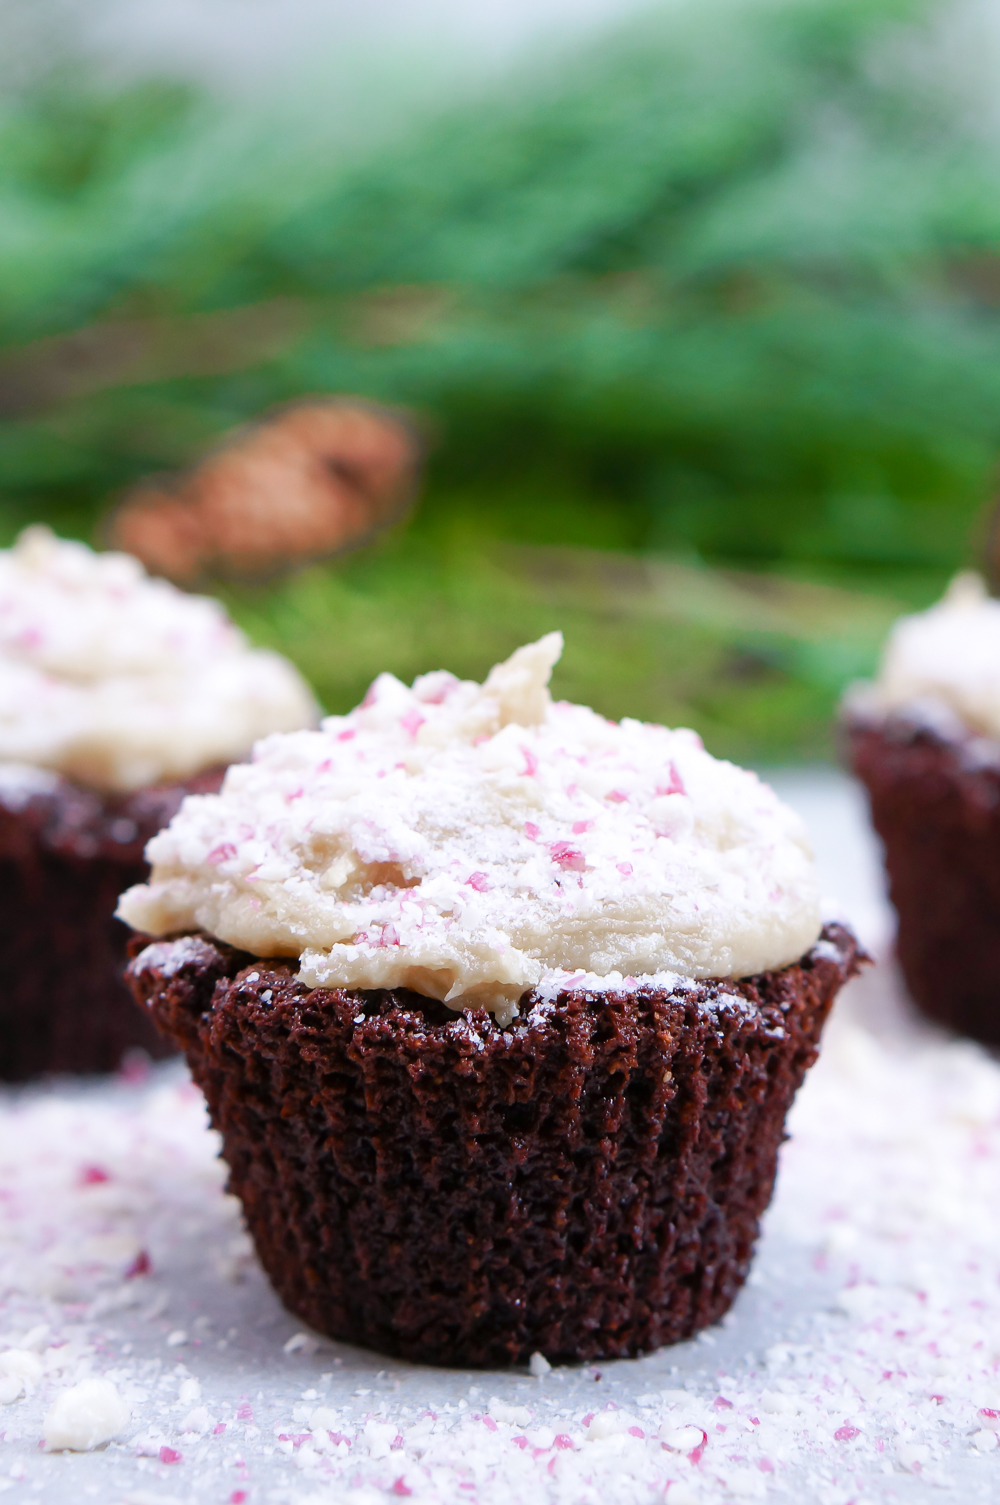 Snow-Dusted Healthy Chocolate Peppermint Cupcakes (Gluten Free, Grain Free, Refined Sugar Free)